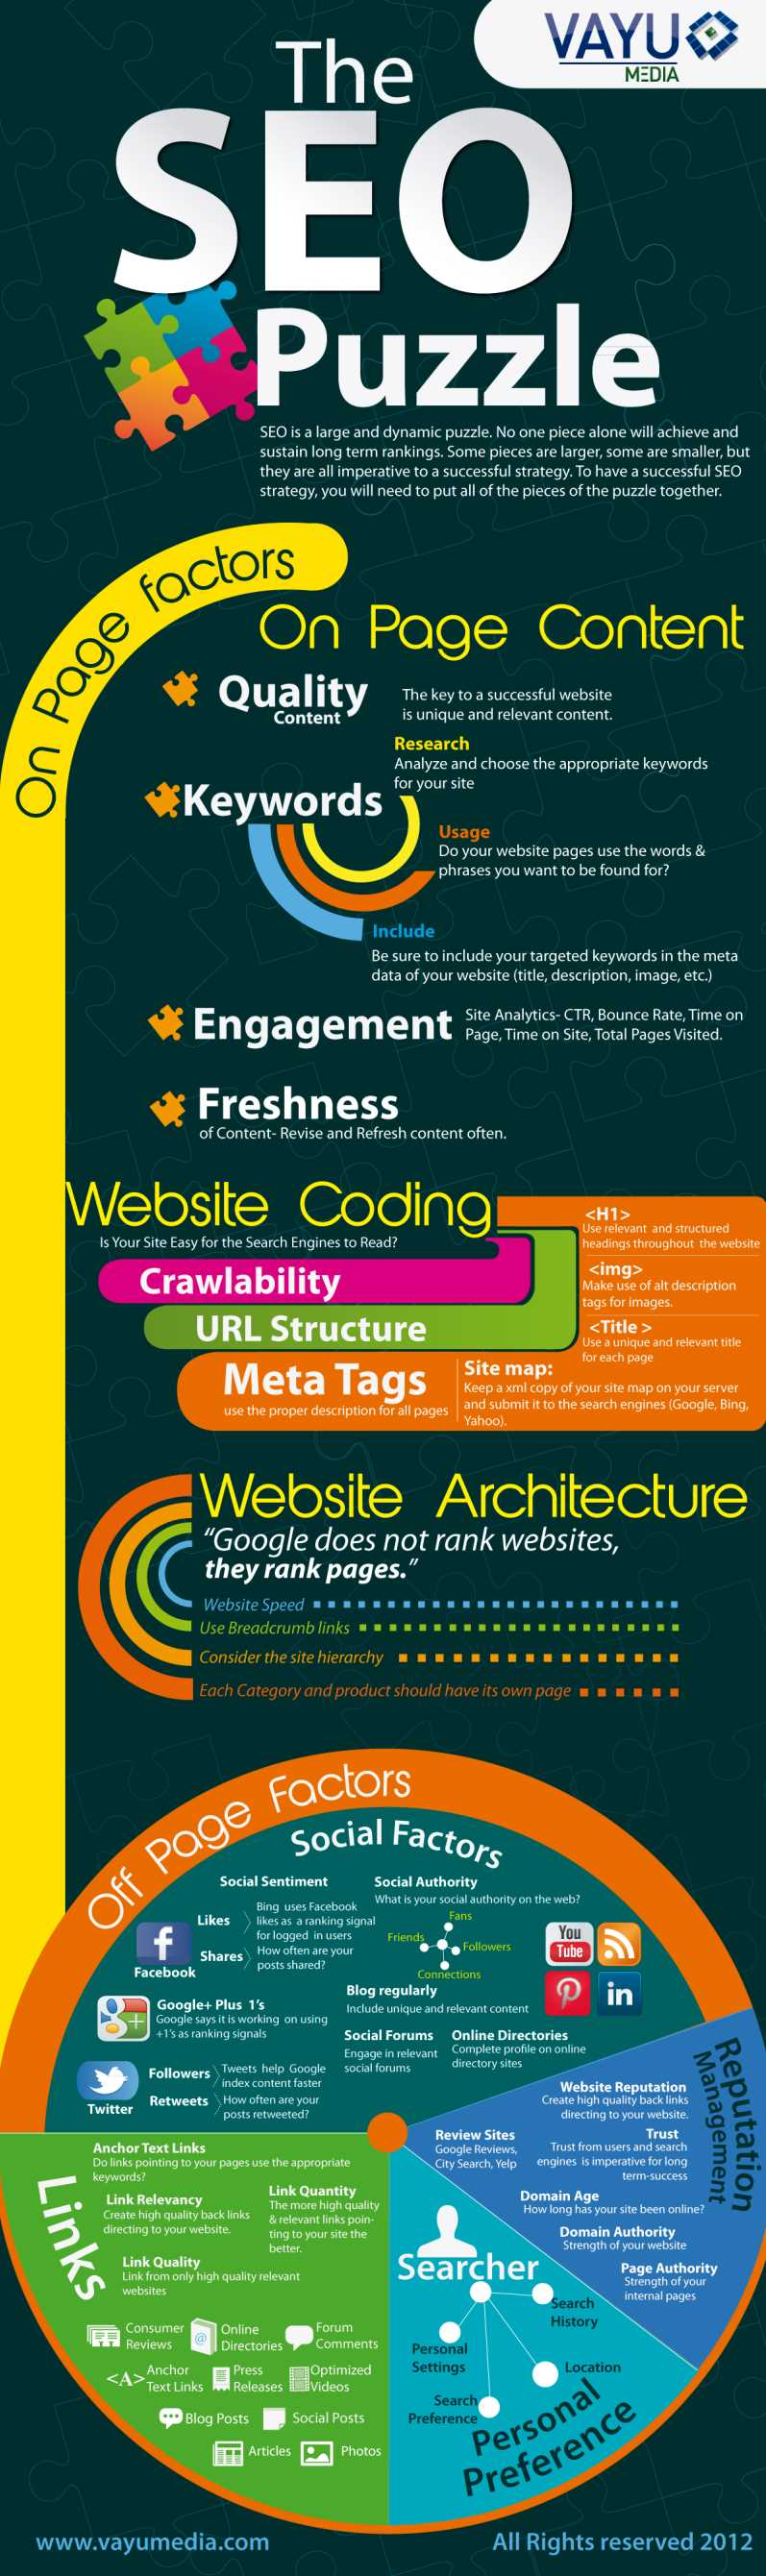 Search Engine Optimization infographic.